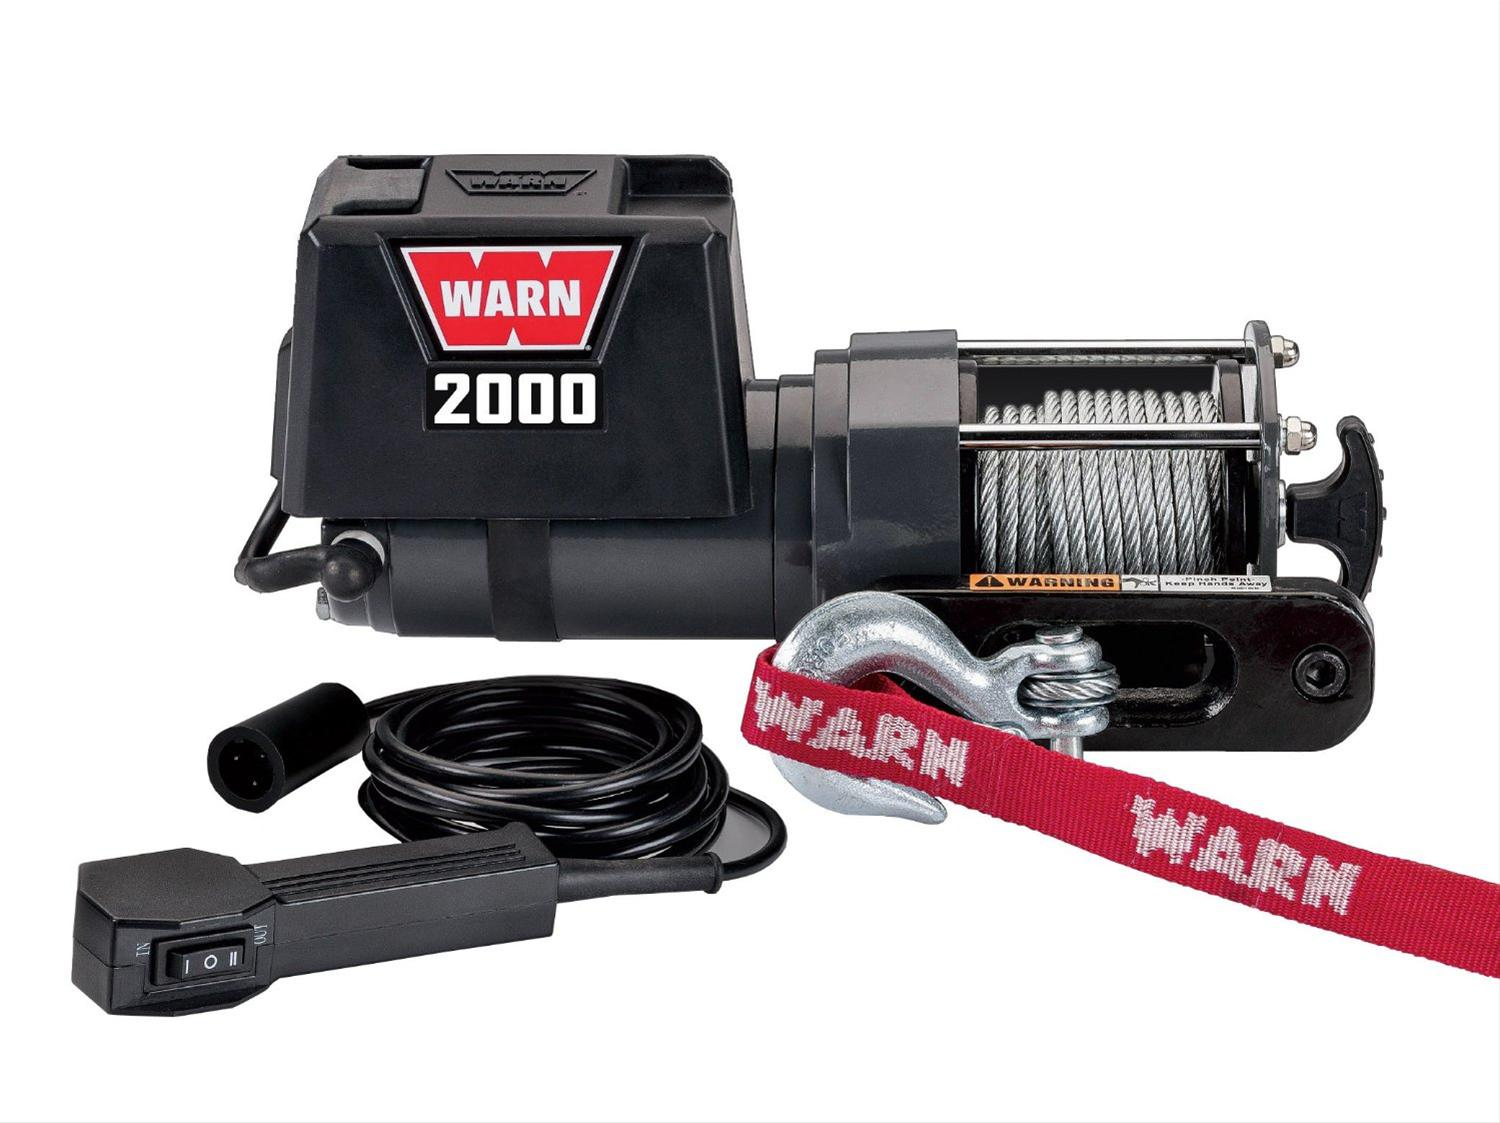 Warn 2000 Dc Winches 92000 Free Shipping On Orders Over 99 At Llc Atv Products Winch Remote Control Summit Racing